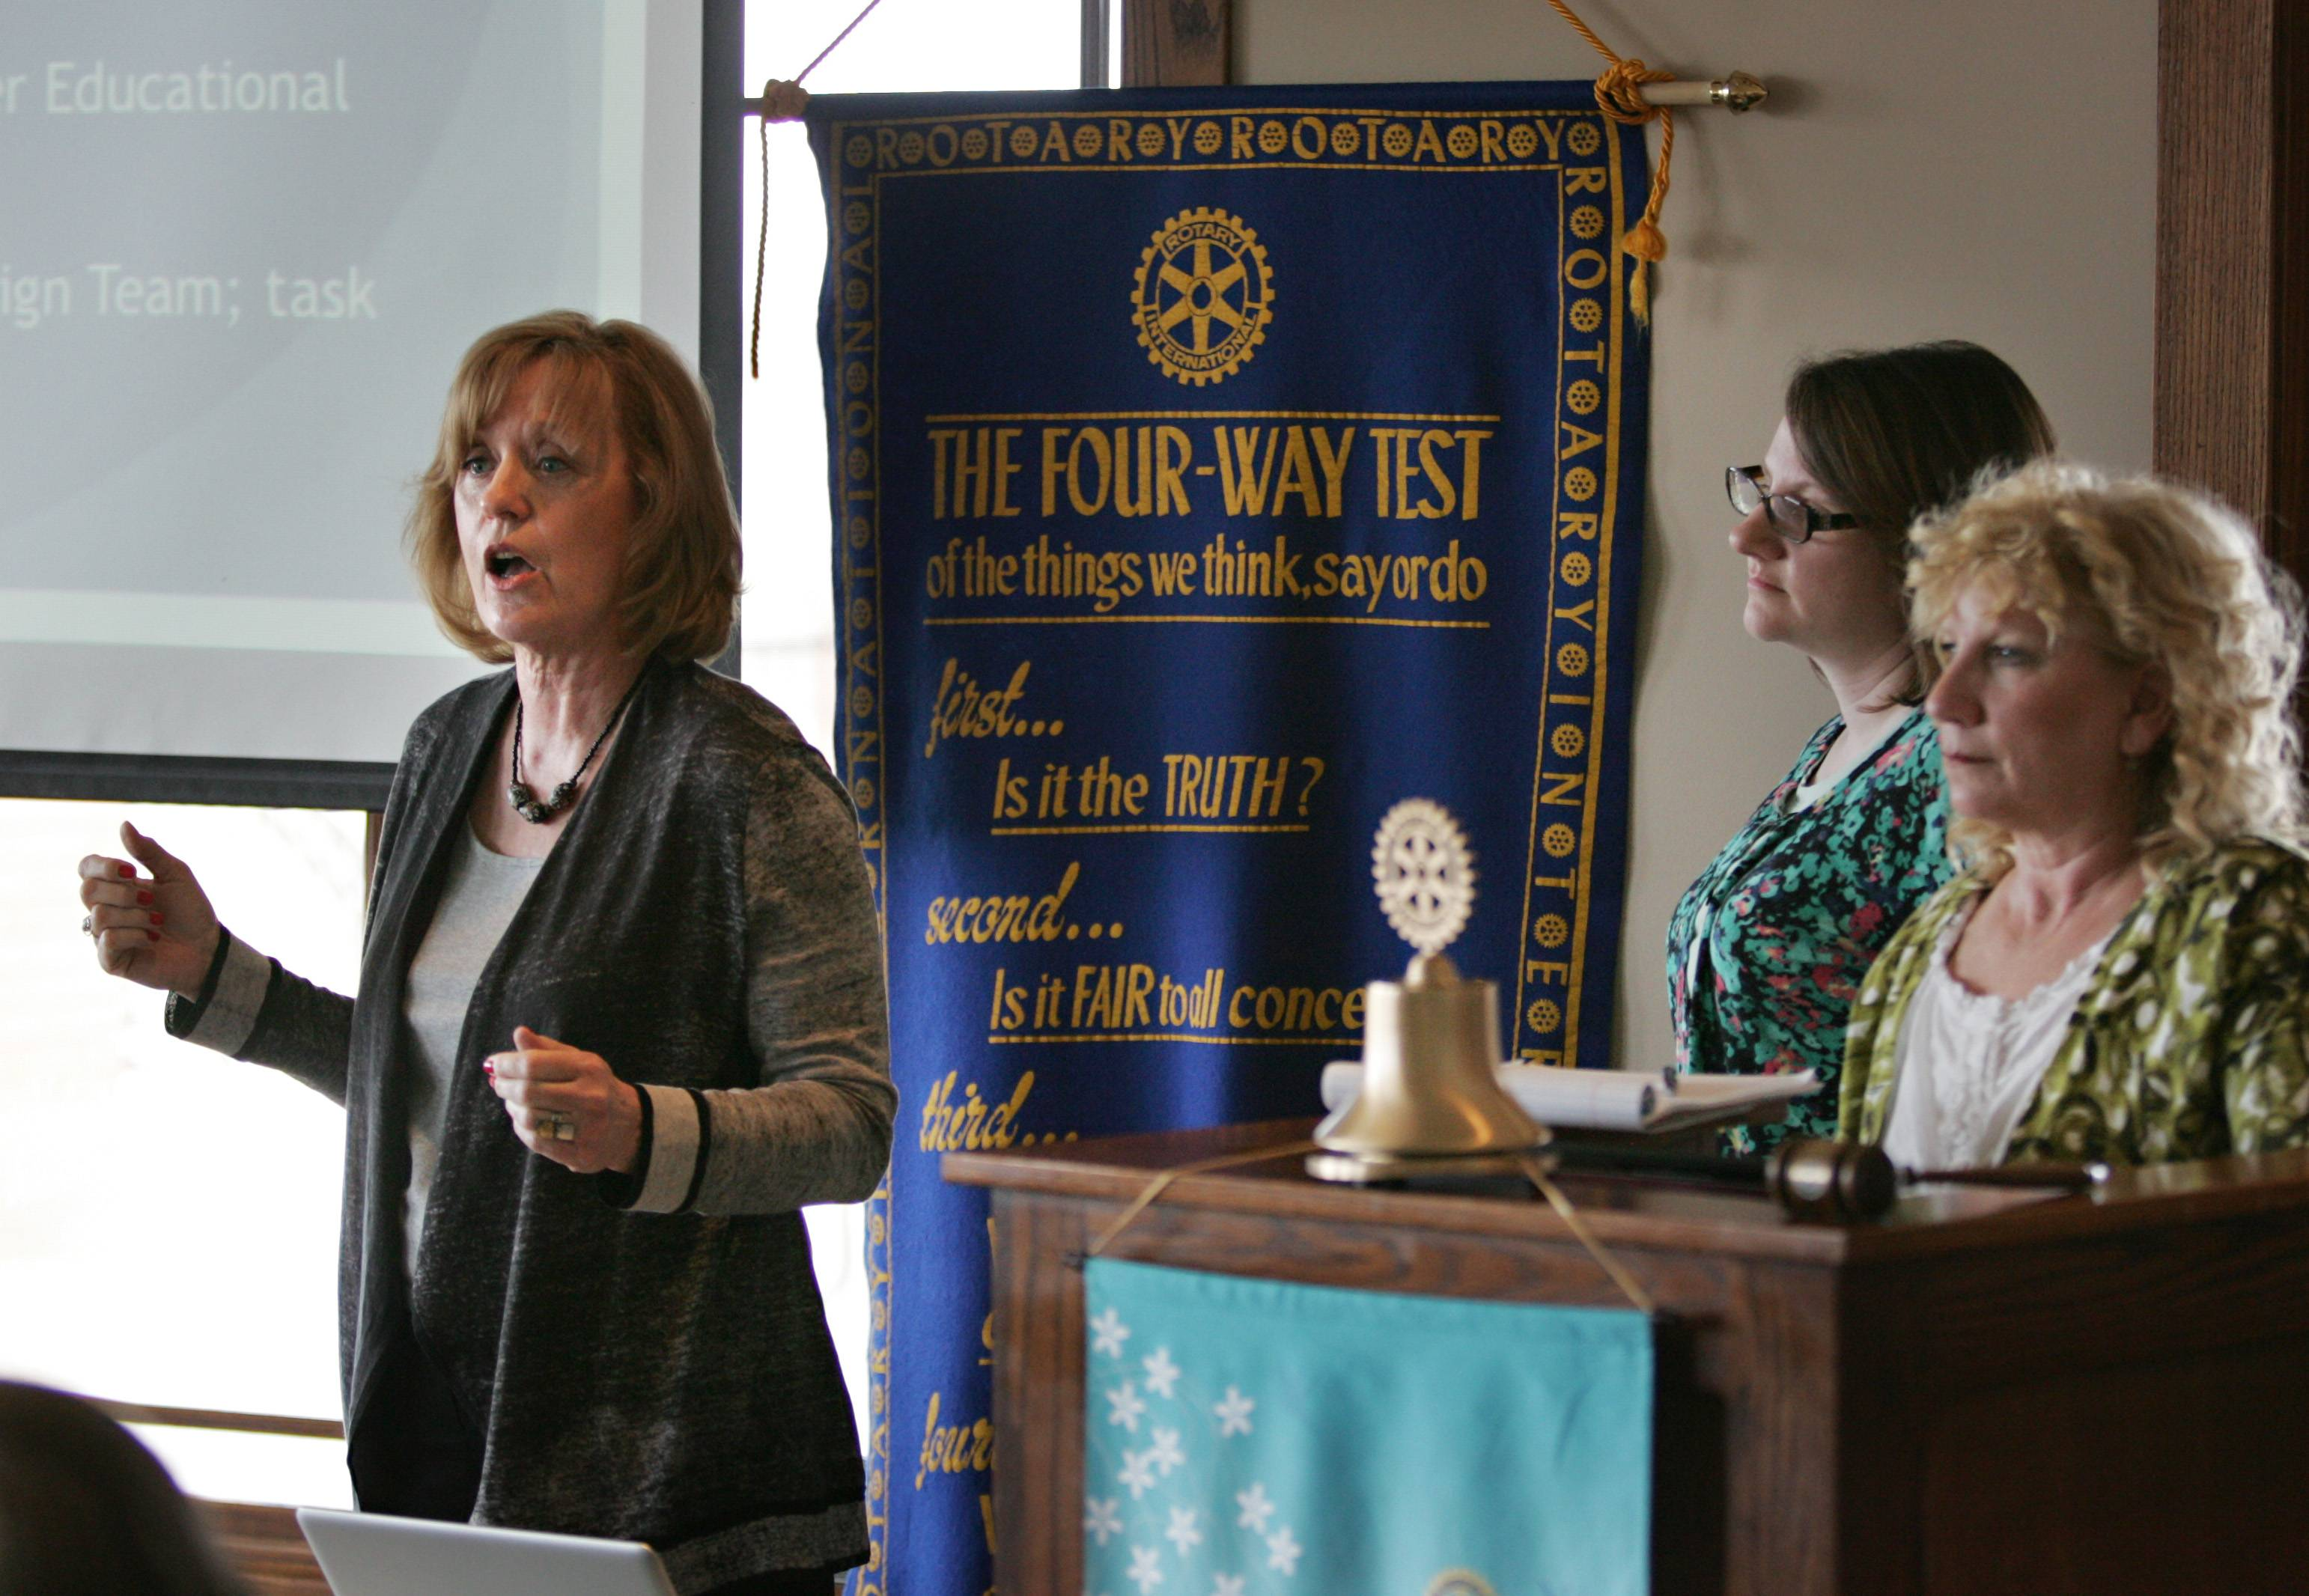 Karen Schock of the Elgin Charter School Initiative talks about the group's charter school proposal with members of the Elgin Noon Rotary Club last year. Also pictured are Kari White, center, and Krissy Palermo.